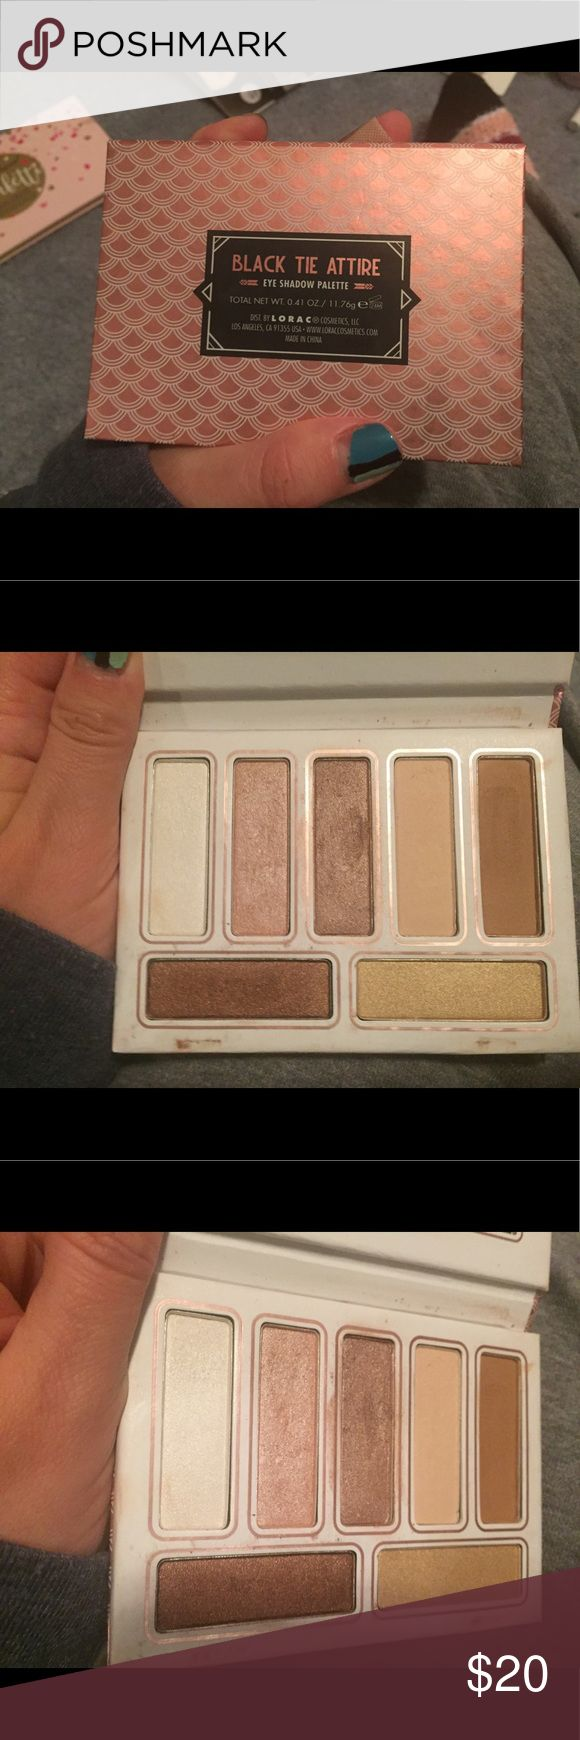 Black Tie Attire Lorac Eyeshadow Palette Lorac palette used about 14 times. Only used a few colors, see use in pictures. Was limited edition Christmas palette from 2016. Lorac Makeup Eyeshadow